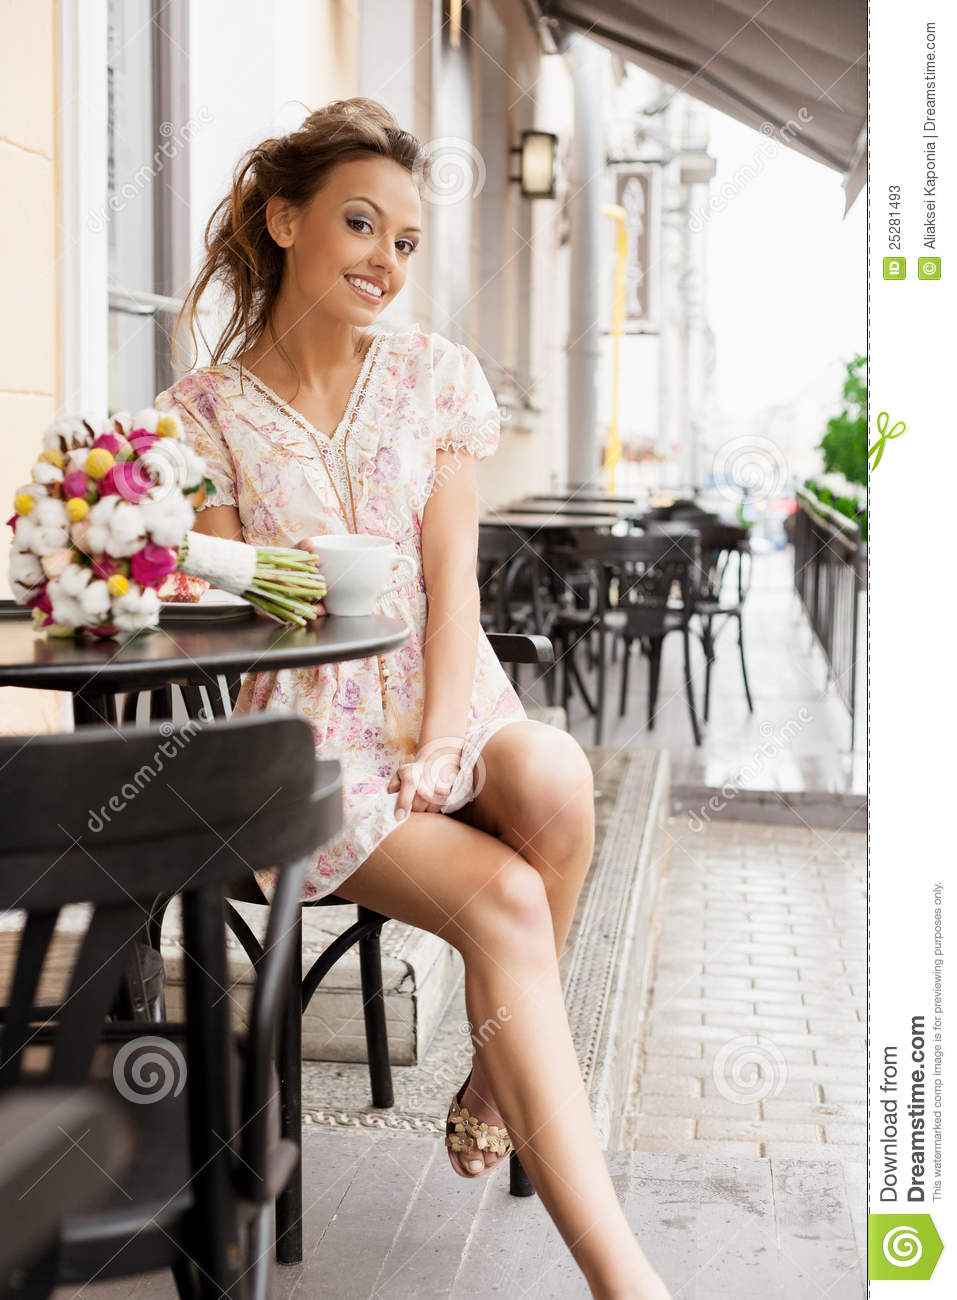 Happy woman in cafe stock image Image of person